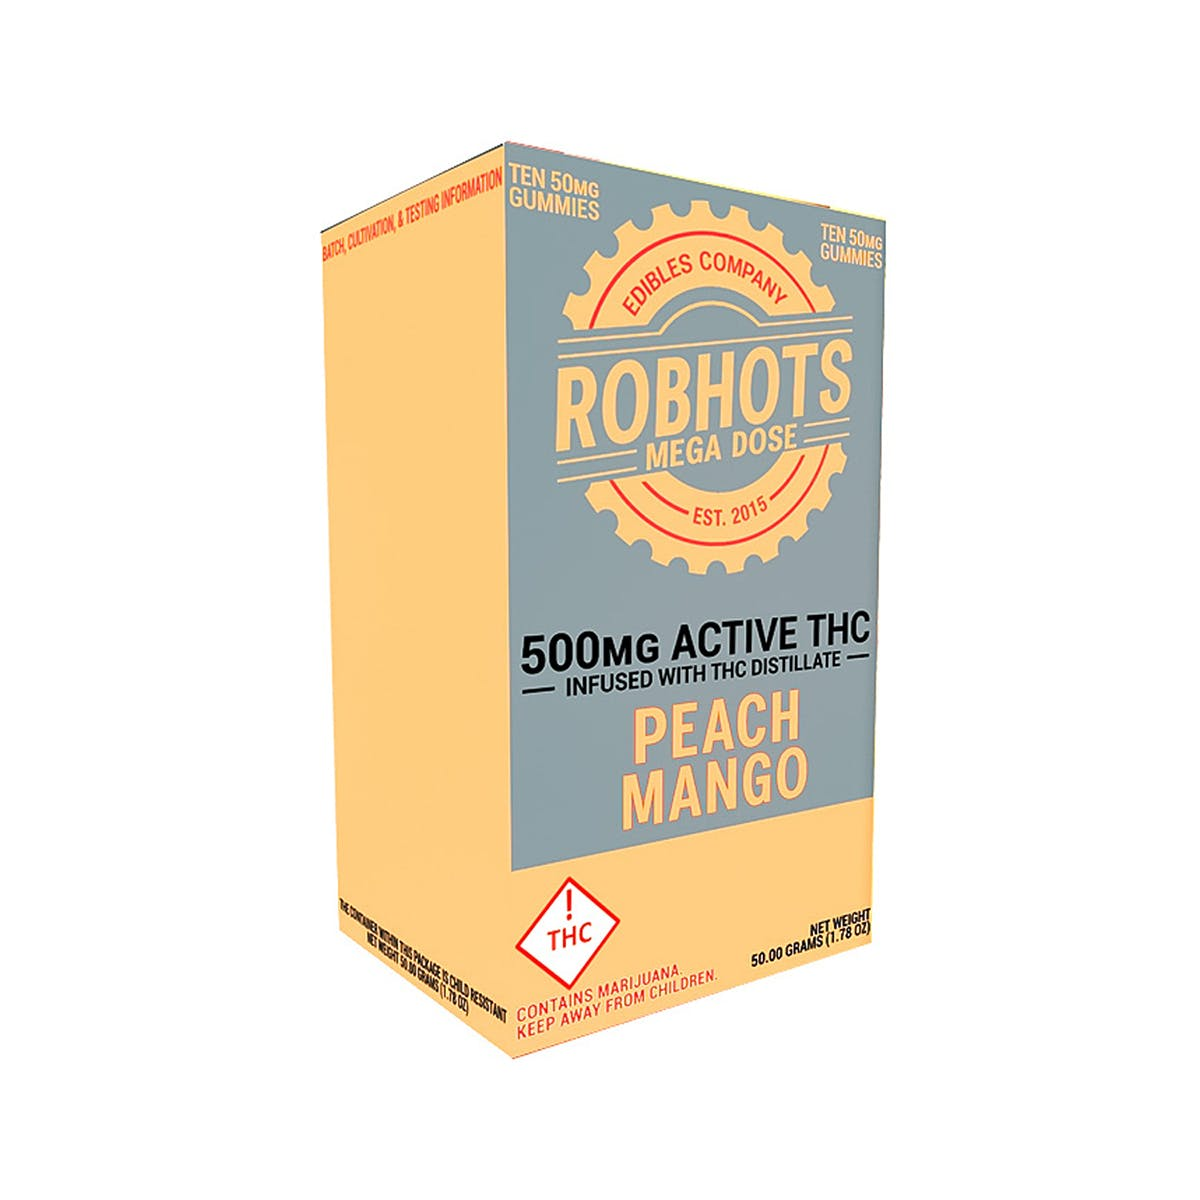 marijuana-dispensaries-the-treehouse-in-colorado-springs-peach-mango-500mg-robhots-gummy-multipack